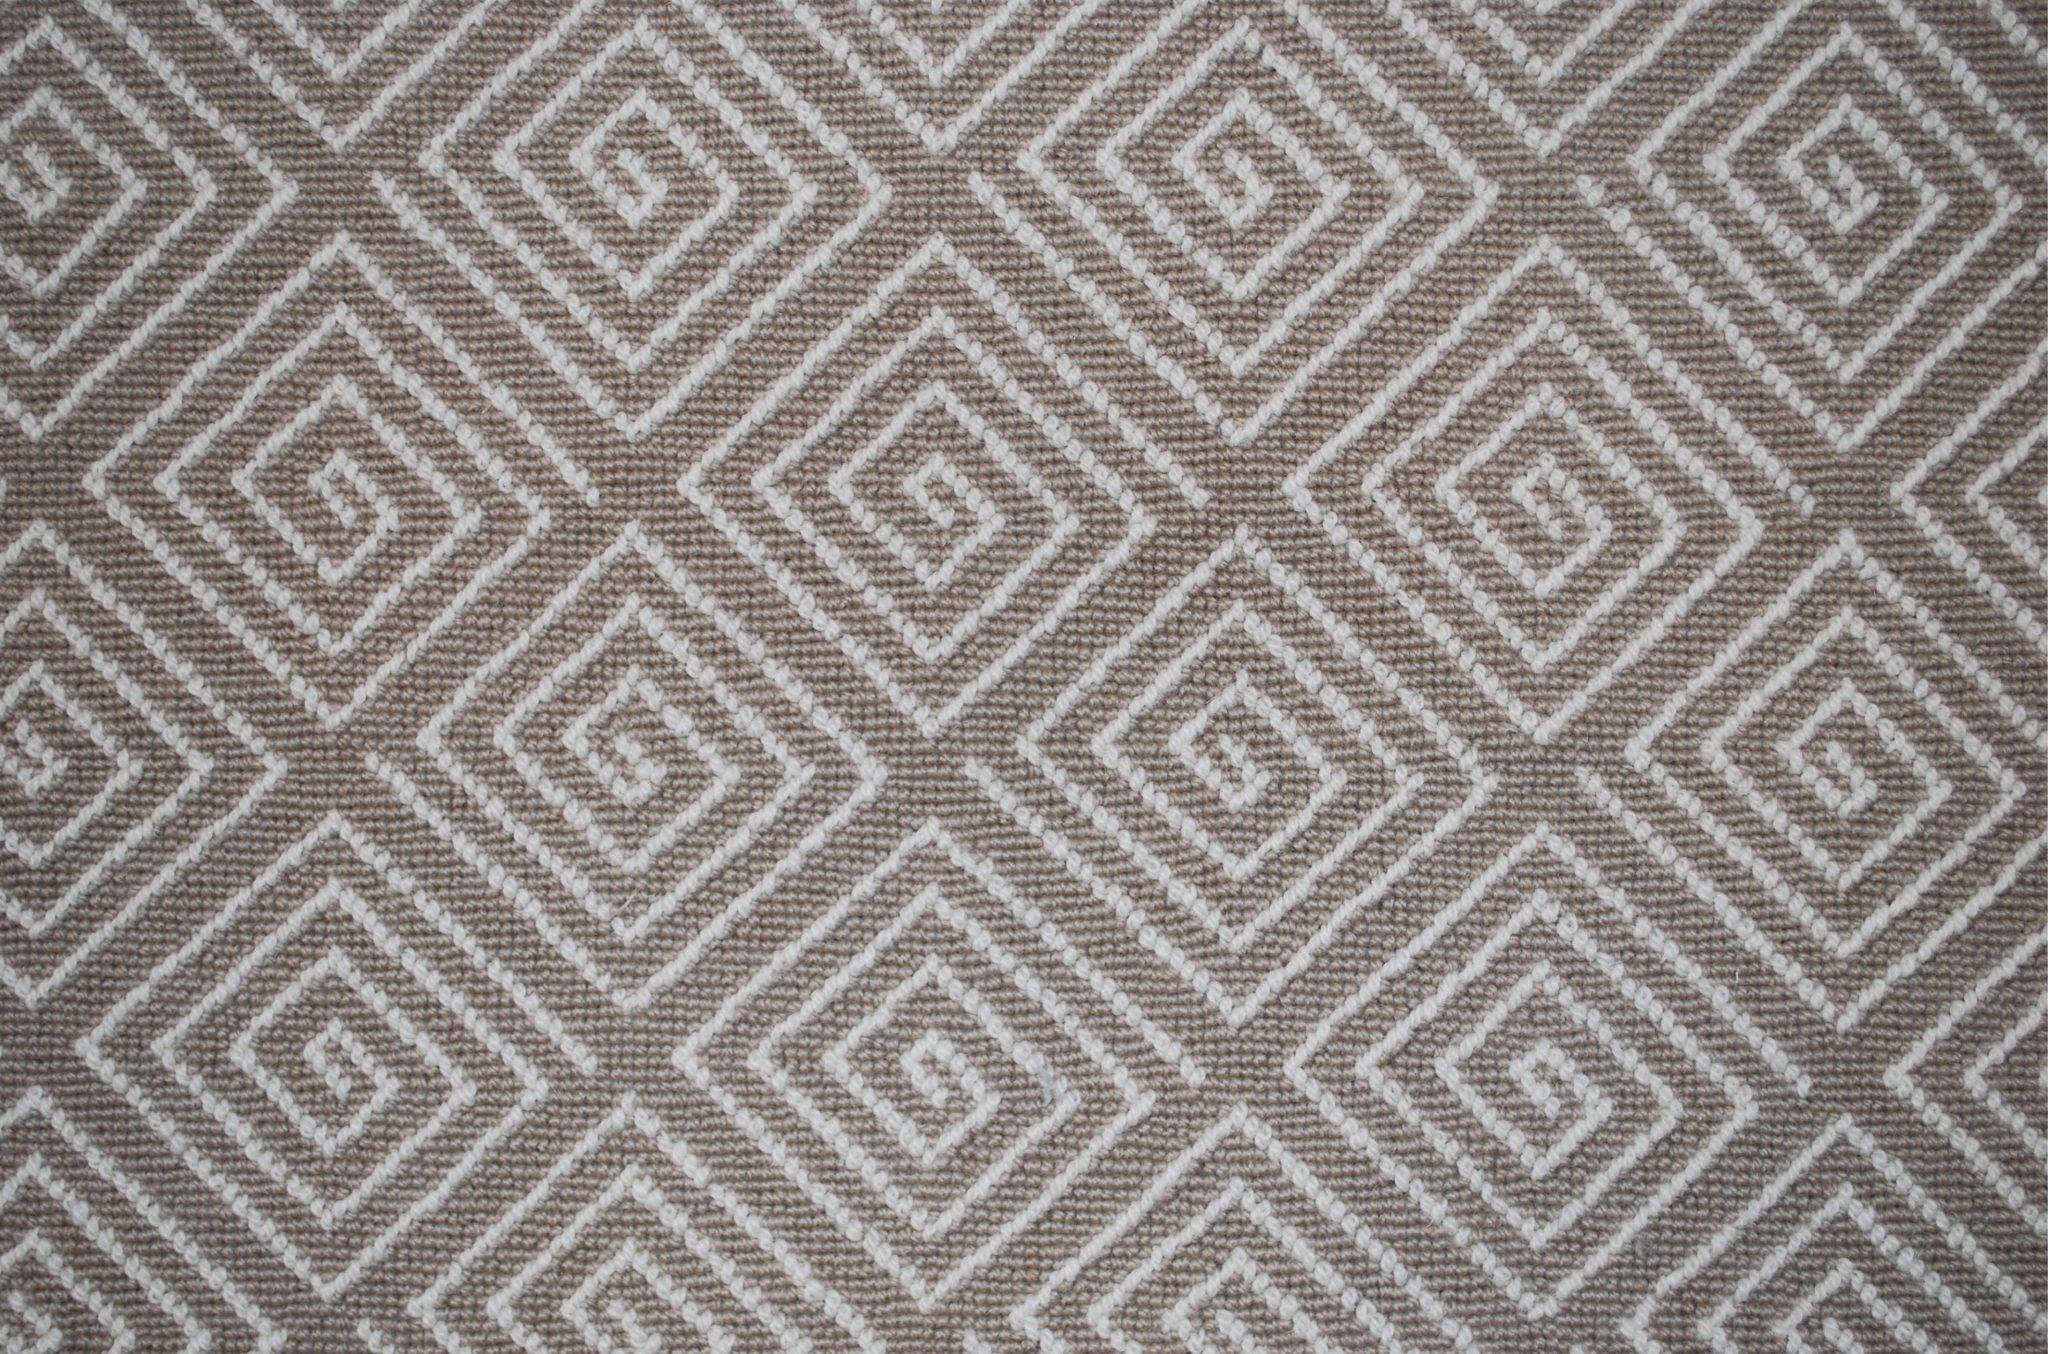 Buy quest ii by prestige commercial pattern carpets in for Hotel carpet texture